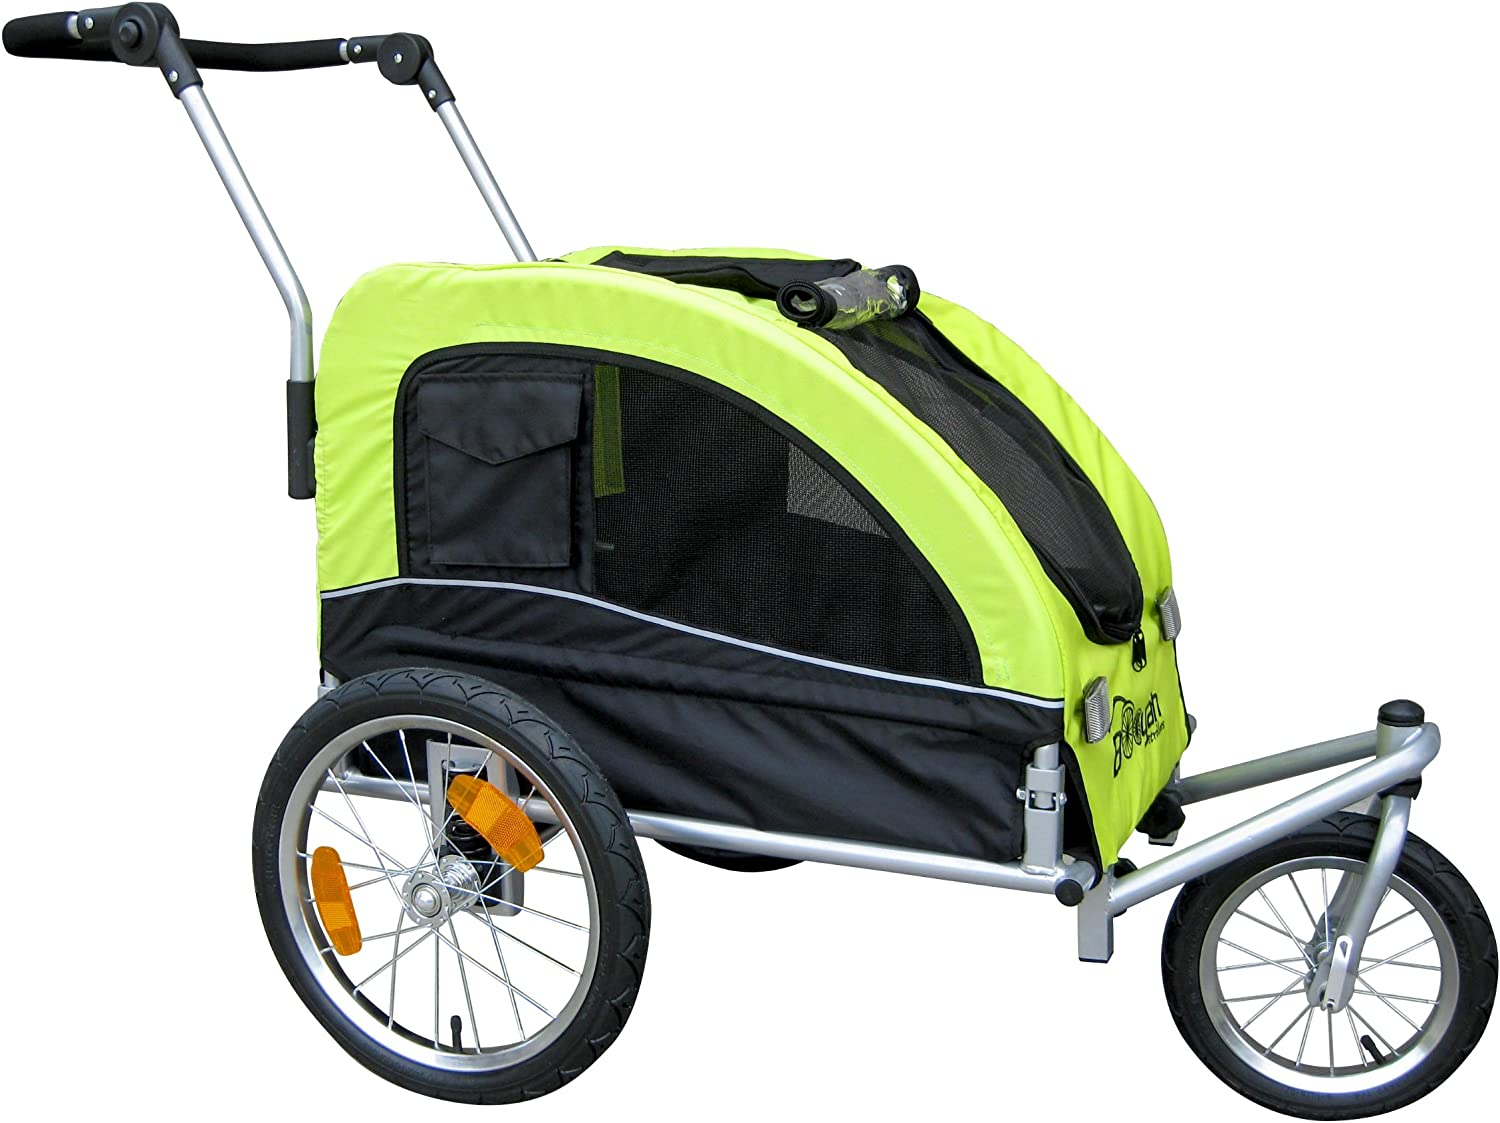 Booyah Medium Dog Stroller Pet Bike Trailer and with Suspension – Florescent Green